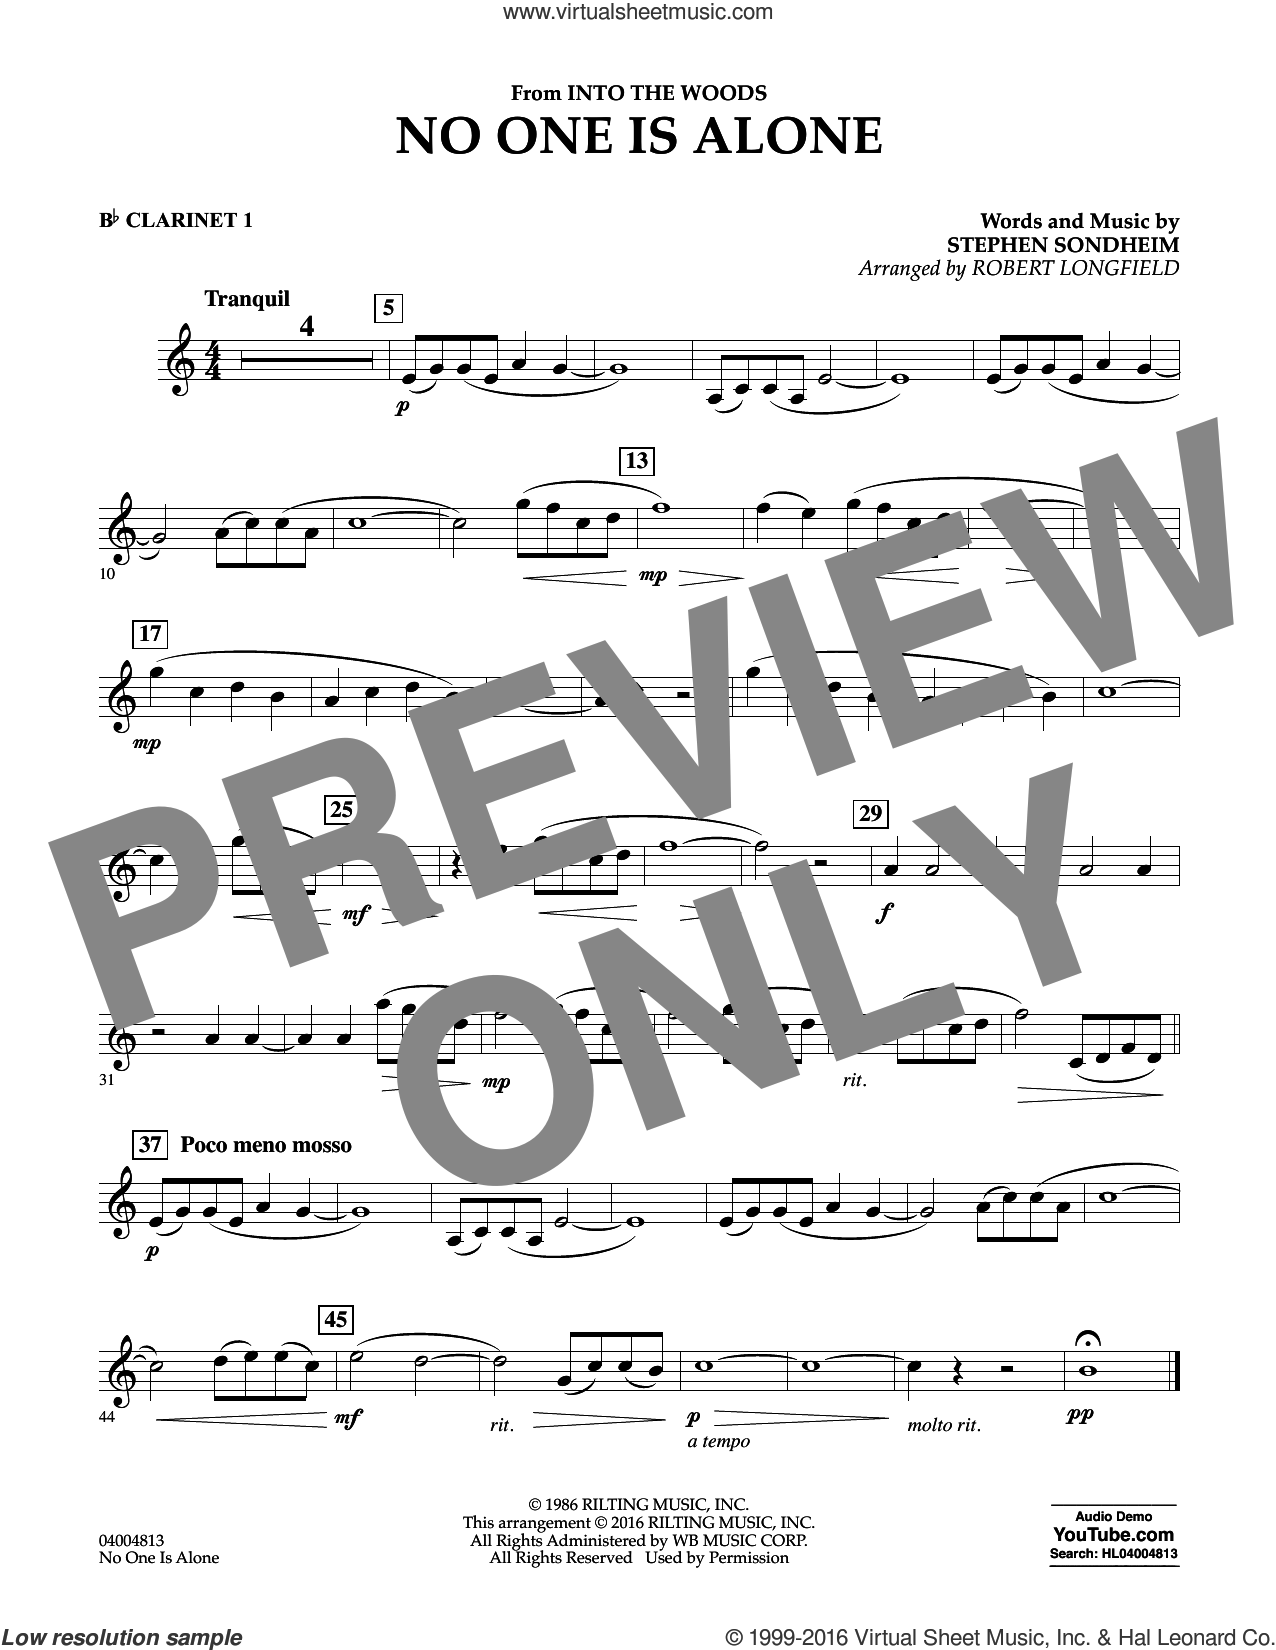 No One Is Alone sheet music for concert band (Bb clarinet 1) by Stephen Sondheim and Robert Longfield, intermediate skill level